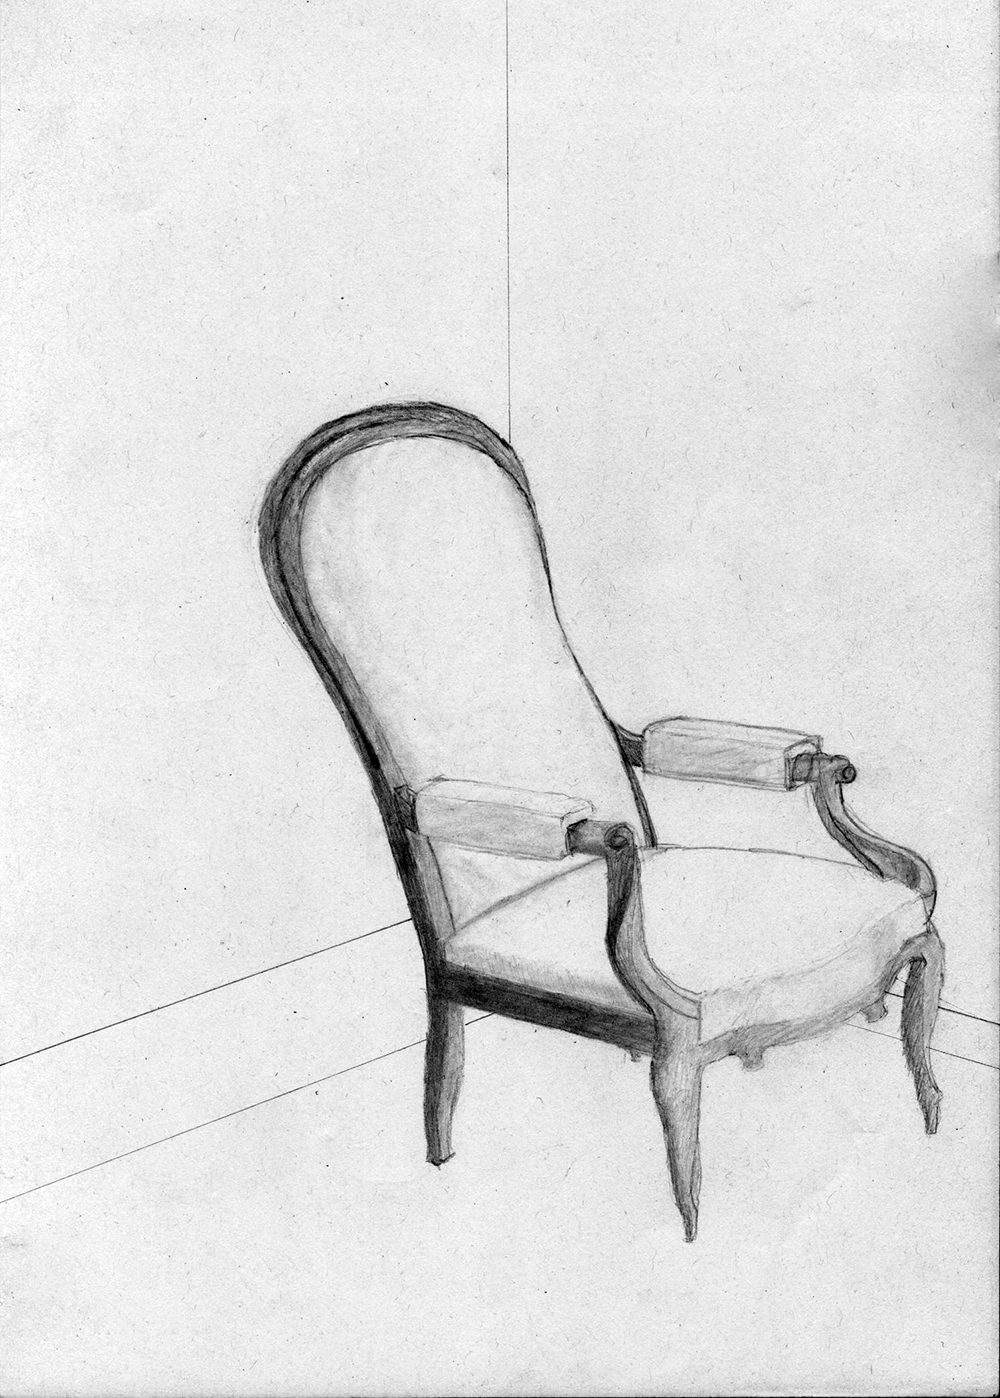 ben-chair-11-small-file